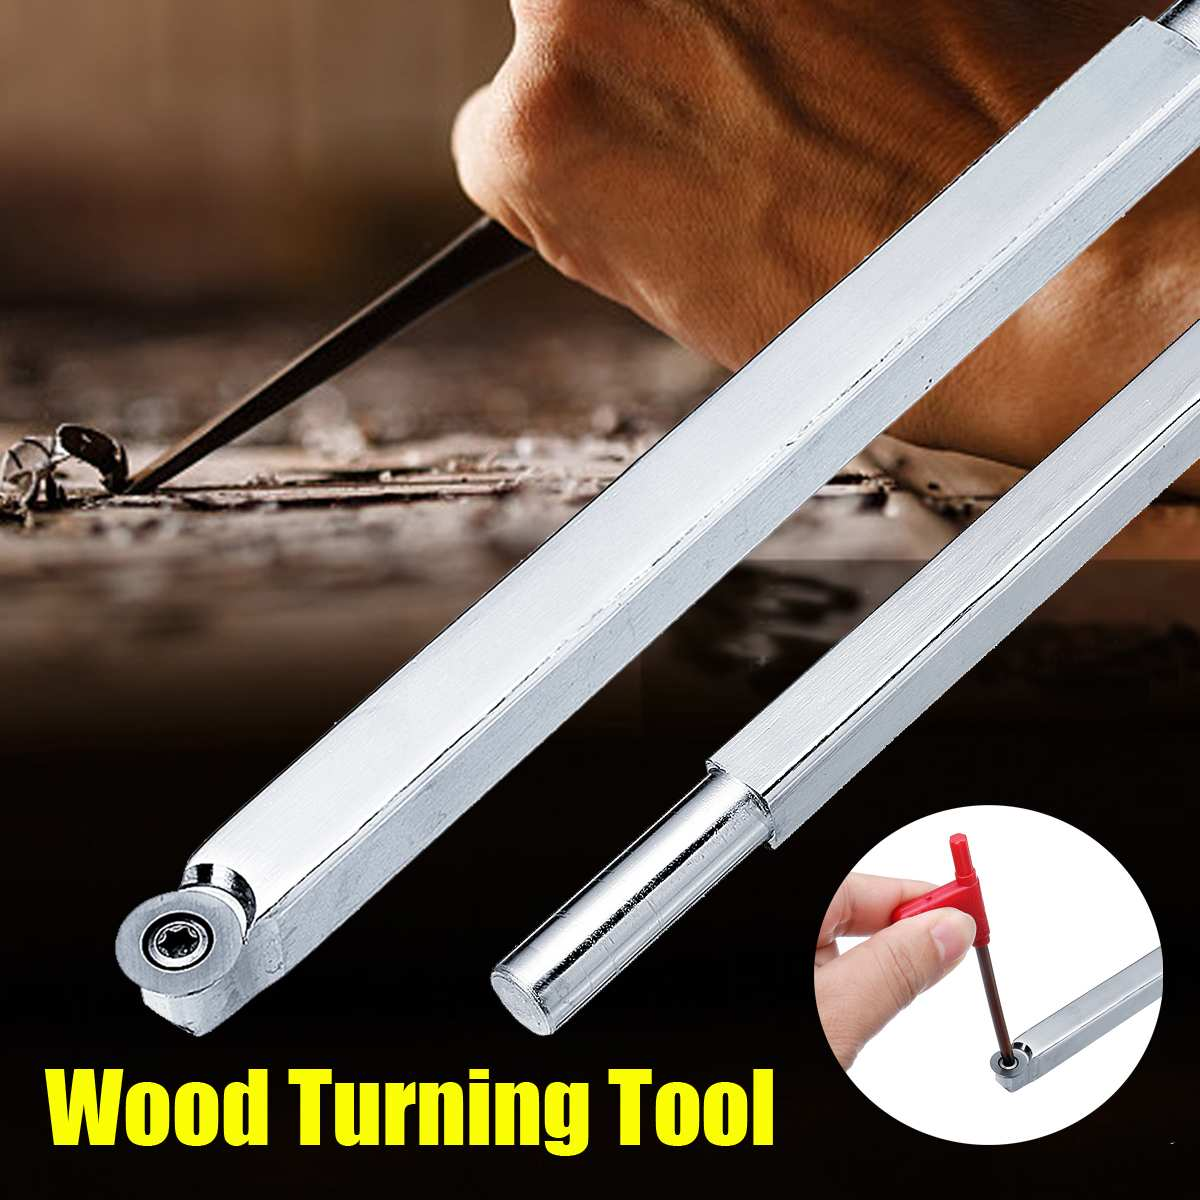 Wood Turning Tool Chisel  Carbide Tip Lathe Tool Insert Cutter Handle Woodworking Tool DIY Wood Rotary Cutter Round CutterWood Turning Tool Chisel  Carbide Tip Lathe Tool Insert Cutter Handle Woodworking Tool DIY Wood Rotary Cutter Round Cutter